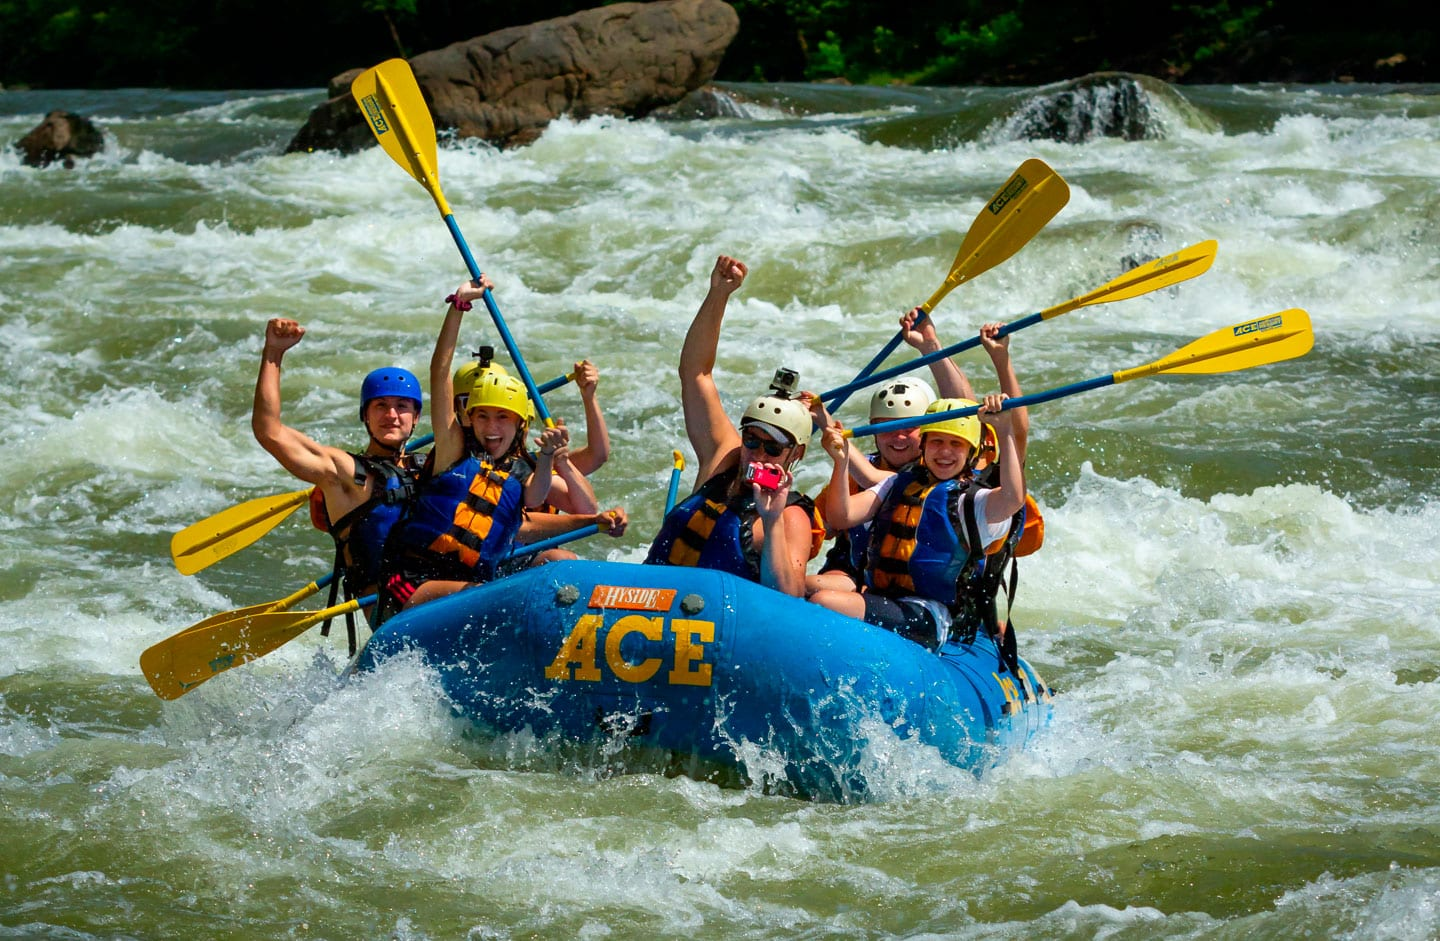 A family smiles and cheers on their lower new river gorge rafting trip while running fayette station rapid.